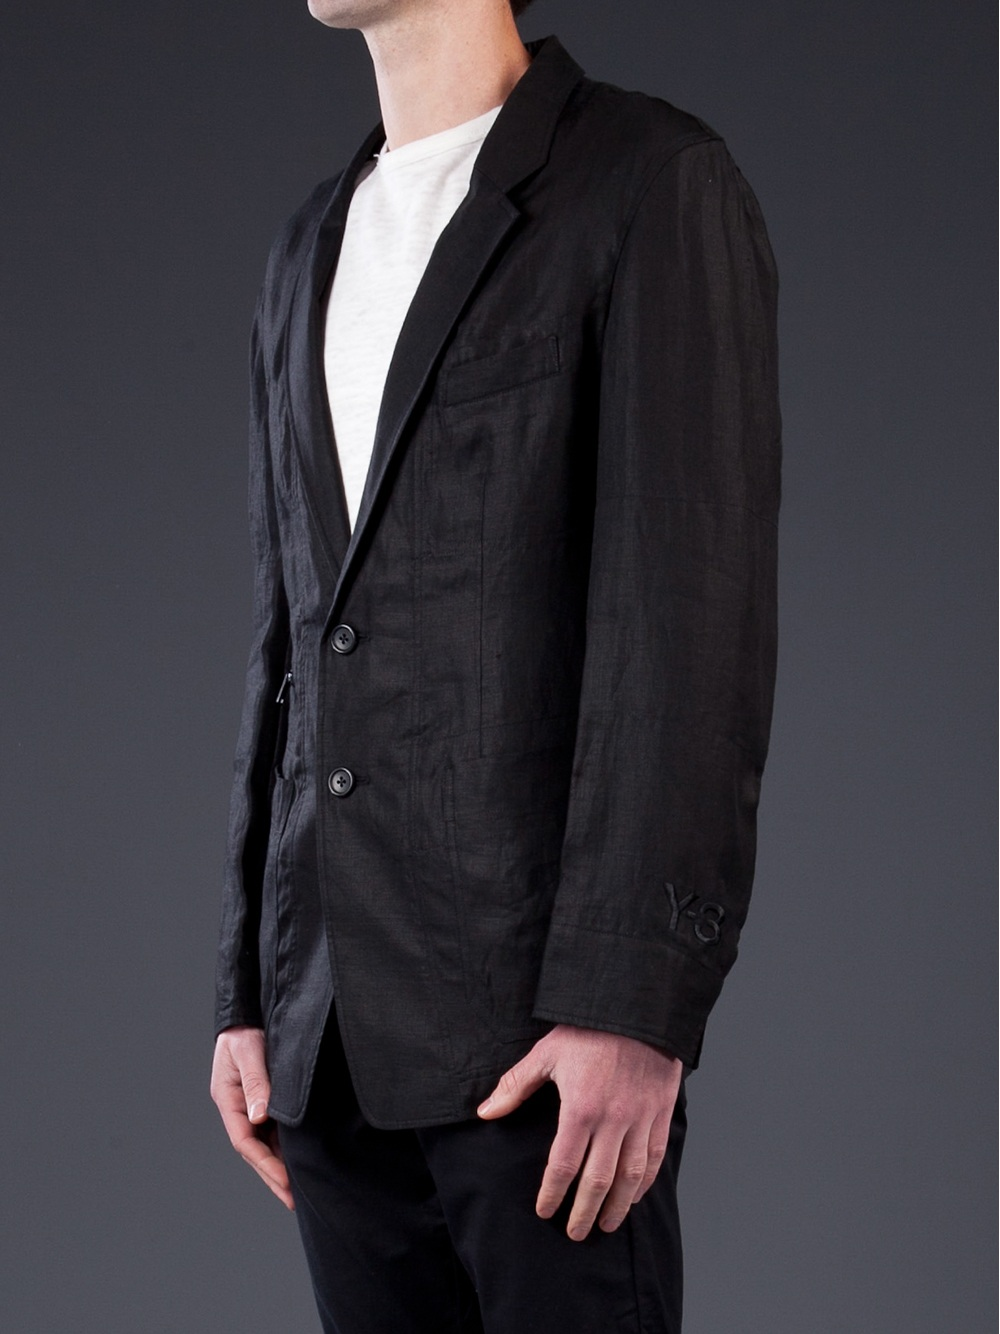 Y-3 Linen Blazer in Black for Men | Lyst